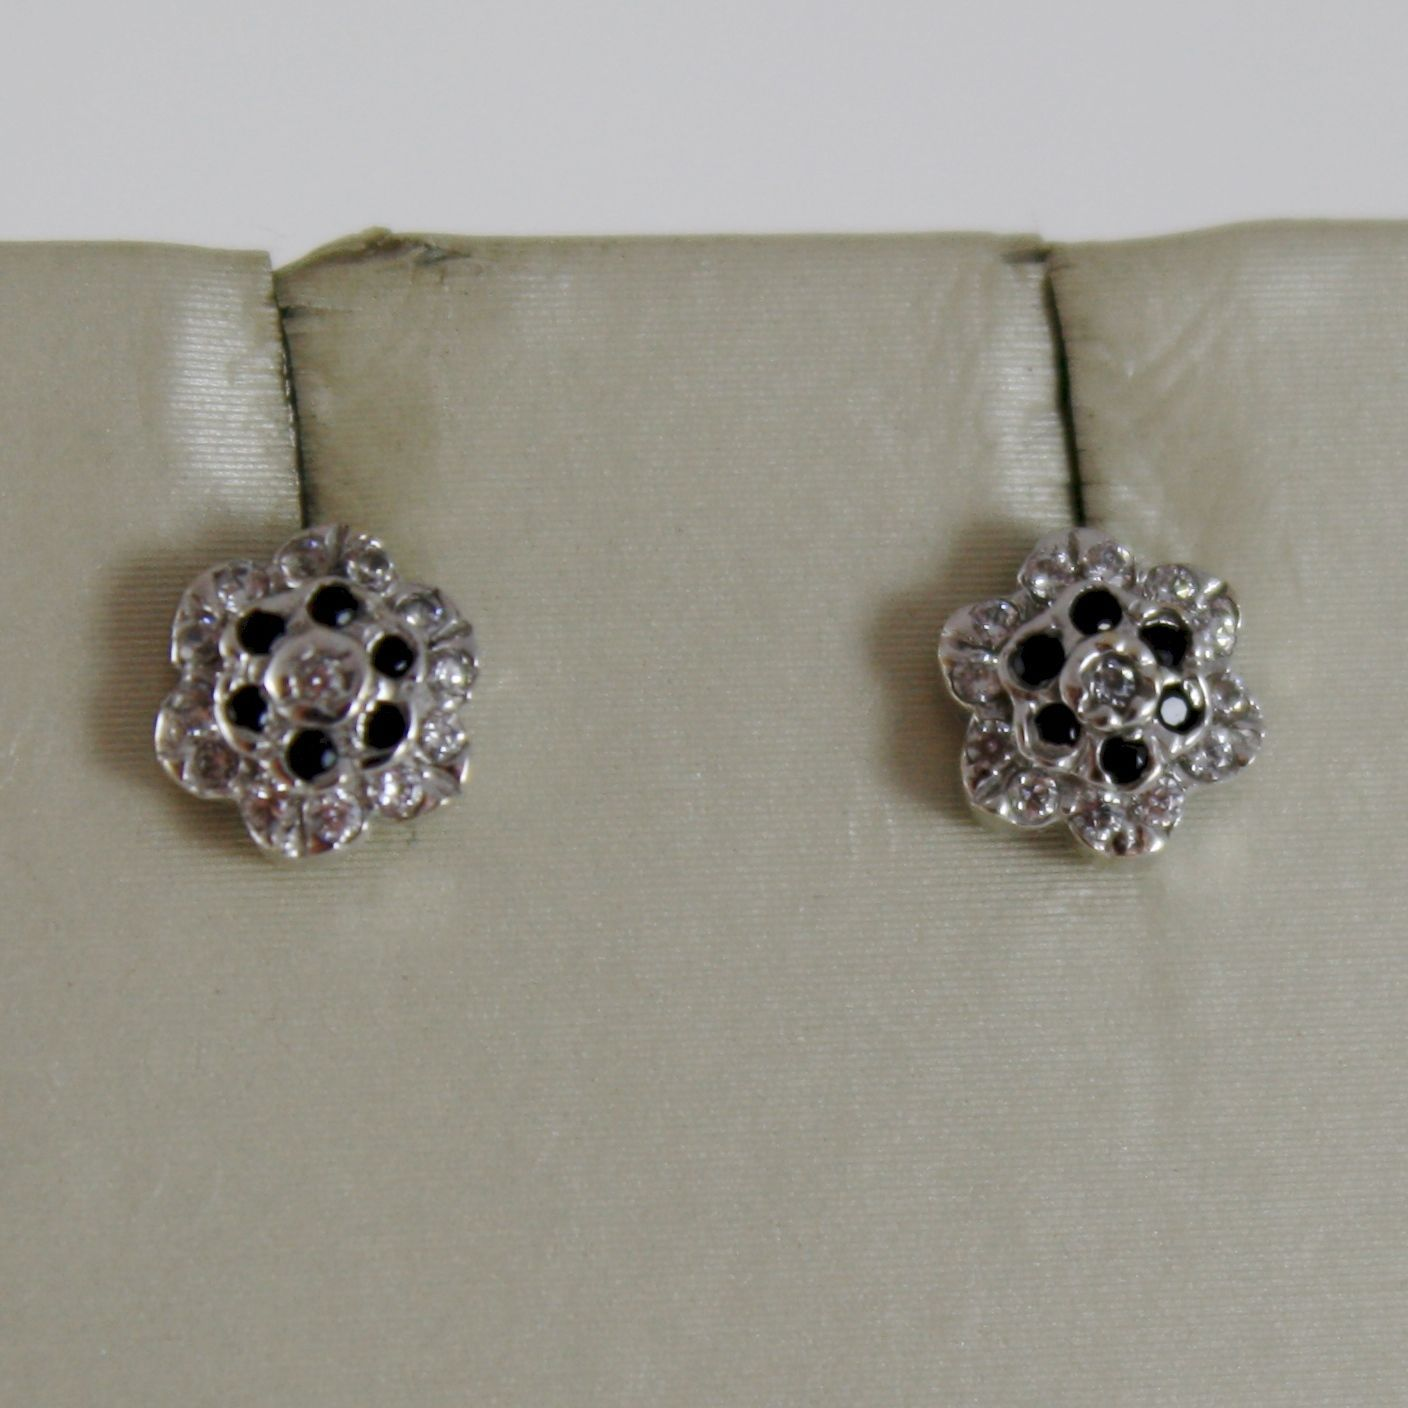 18K WHITE GOLD MINI 7 MM FLOWER EARRINGS WITH BLACK WHITE ZIRCONIA MADE IN ITALY